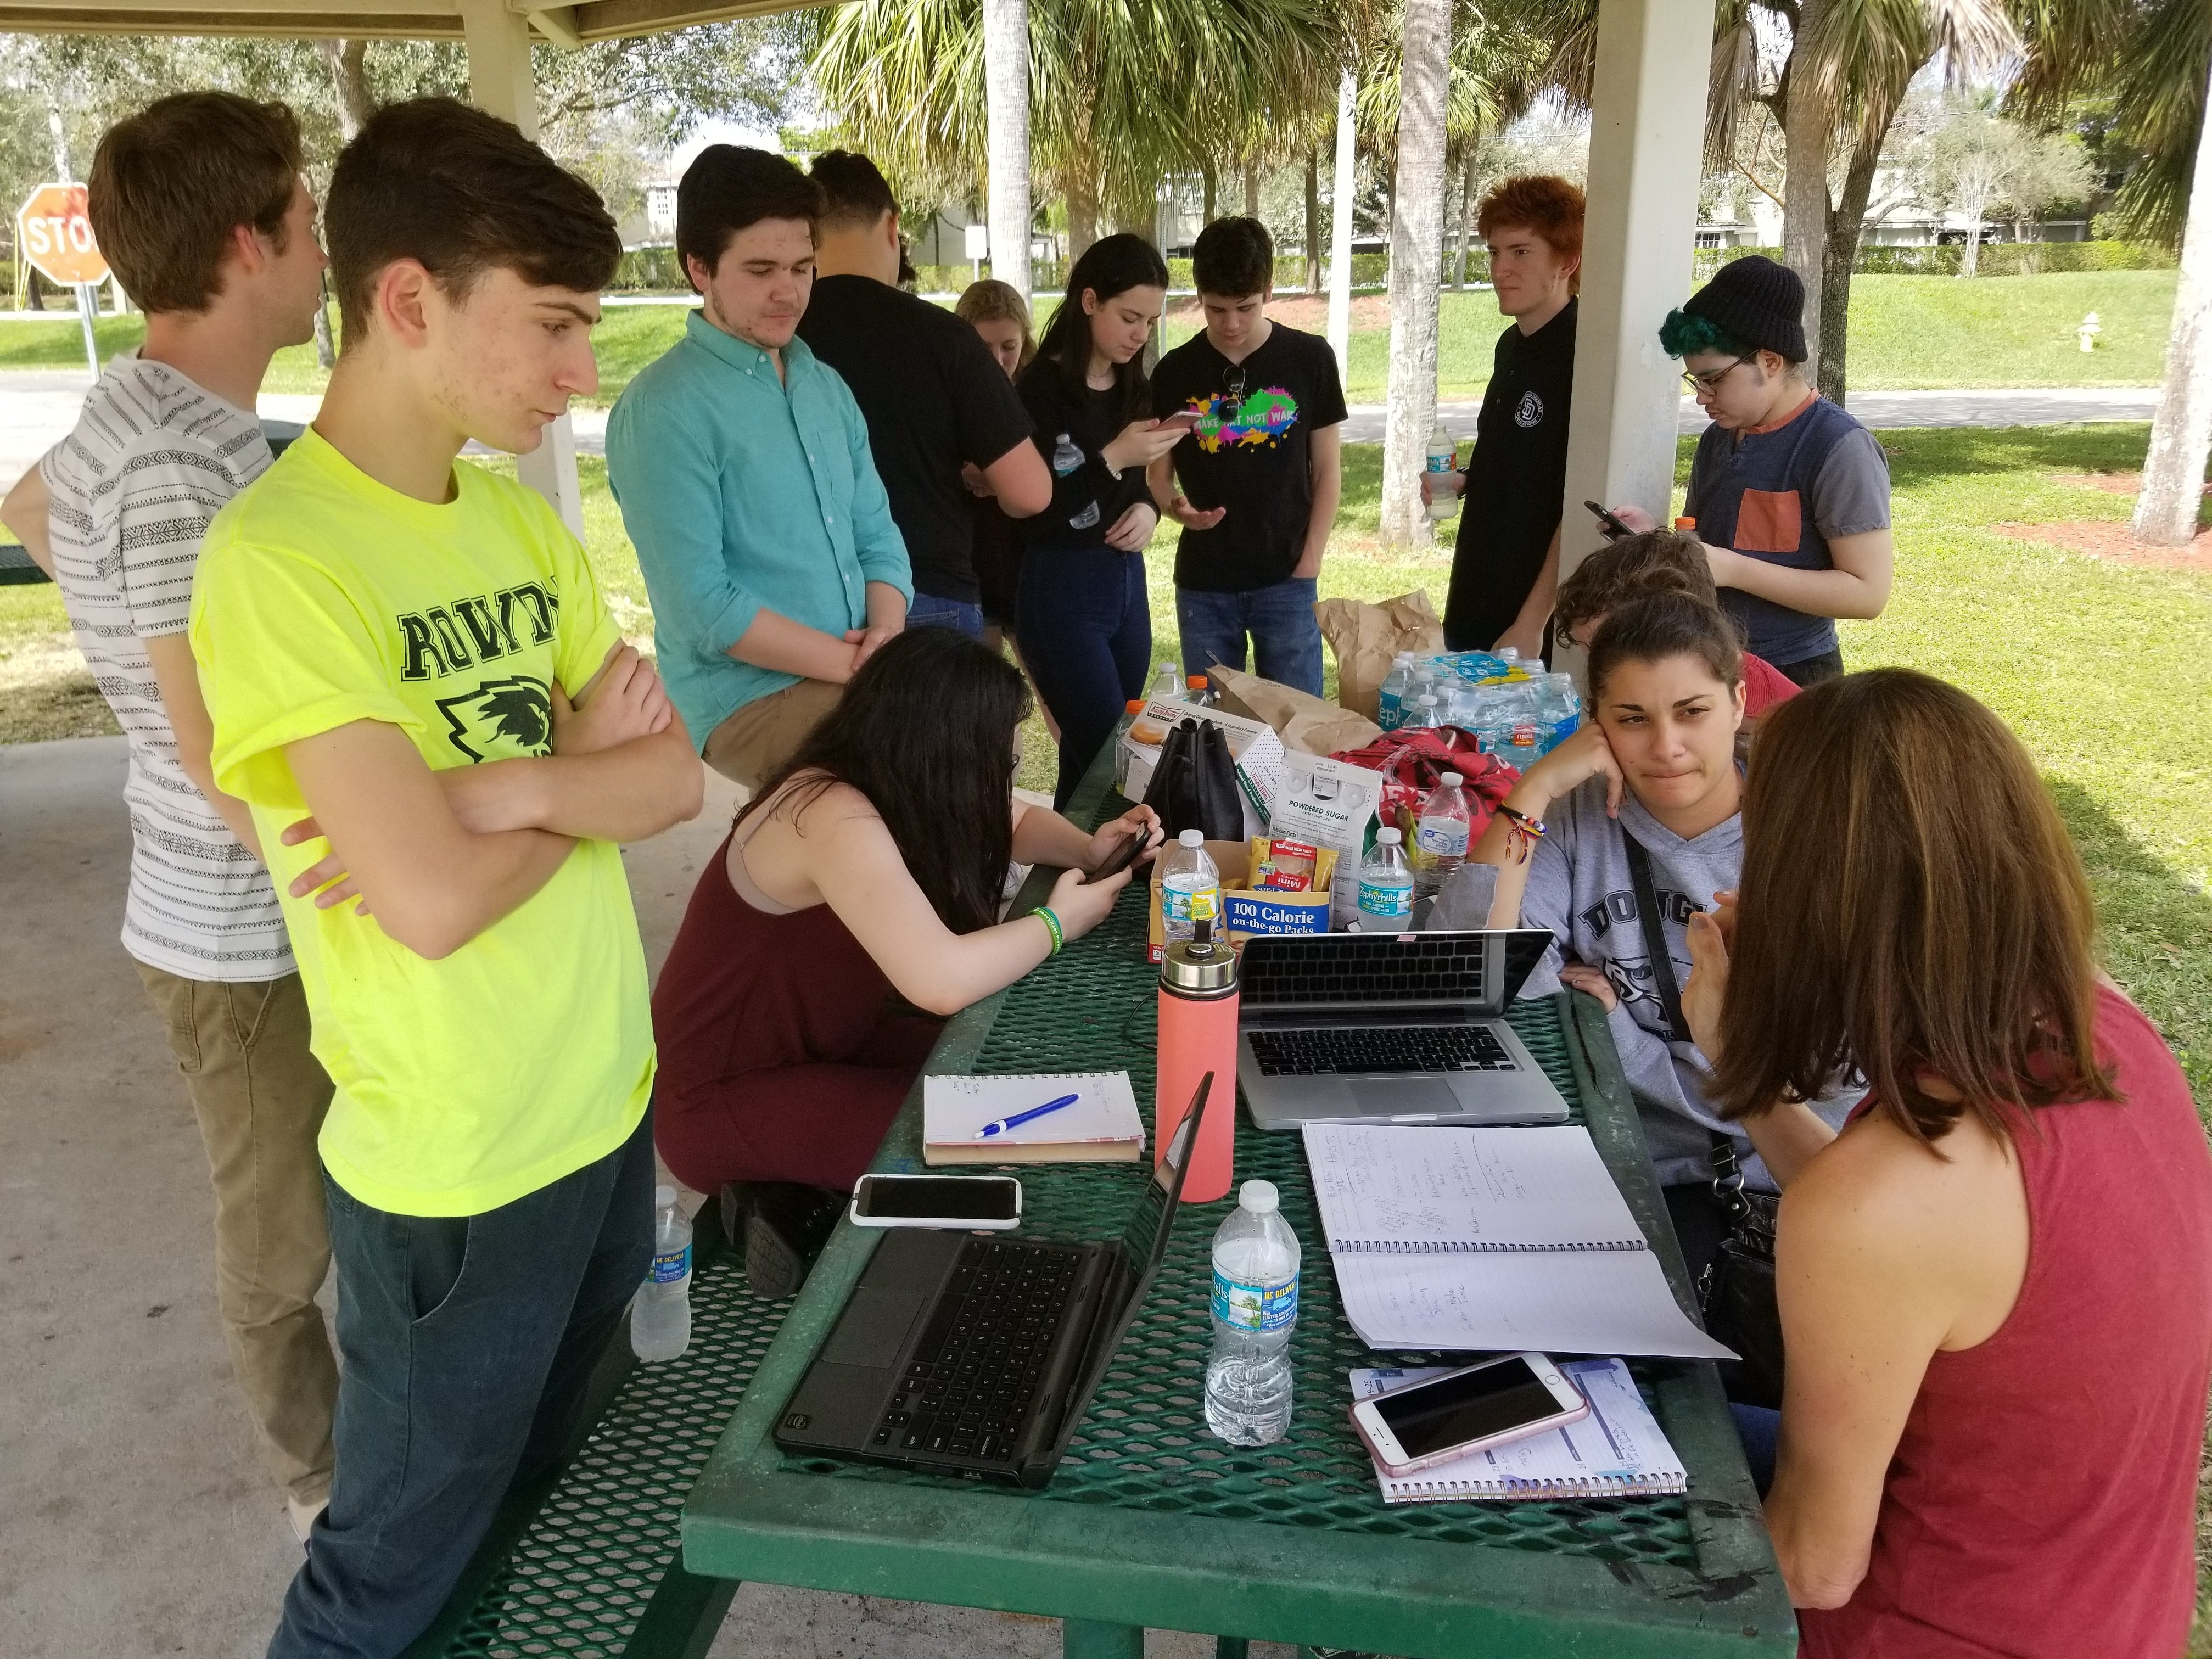 Students from Marjory Stoneman Douglas High School use a picnic table at a city park as a media center to plan their rallies on Washington, D.C., and around the country.